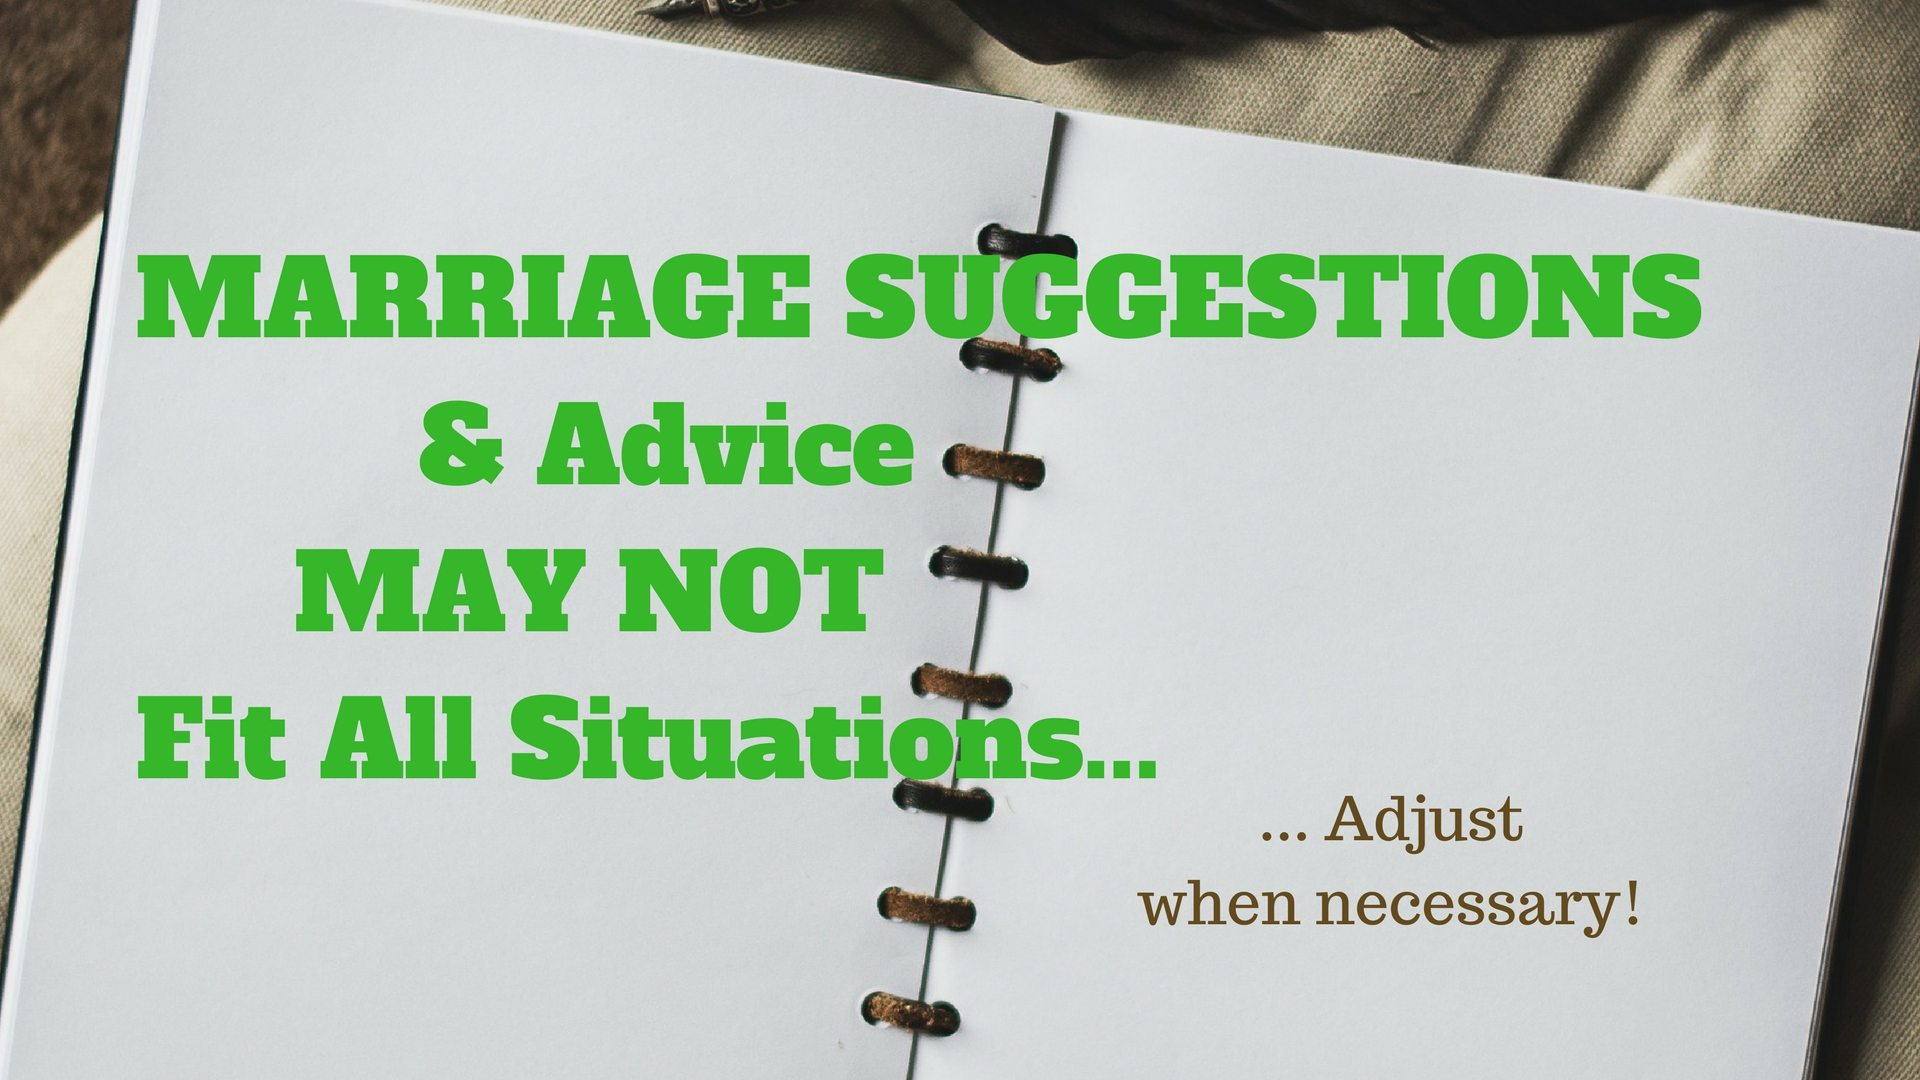 MARRIAGE SUGGESTIONS - Pixabay - Canva